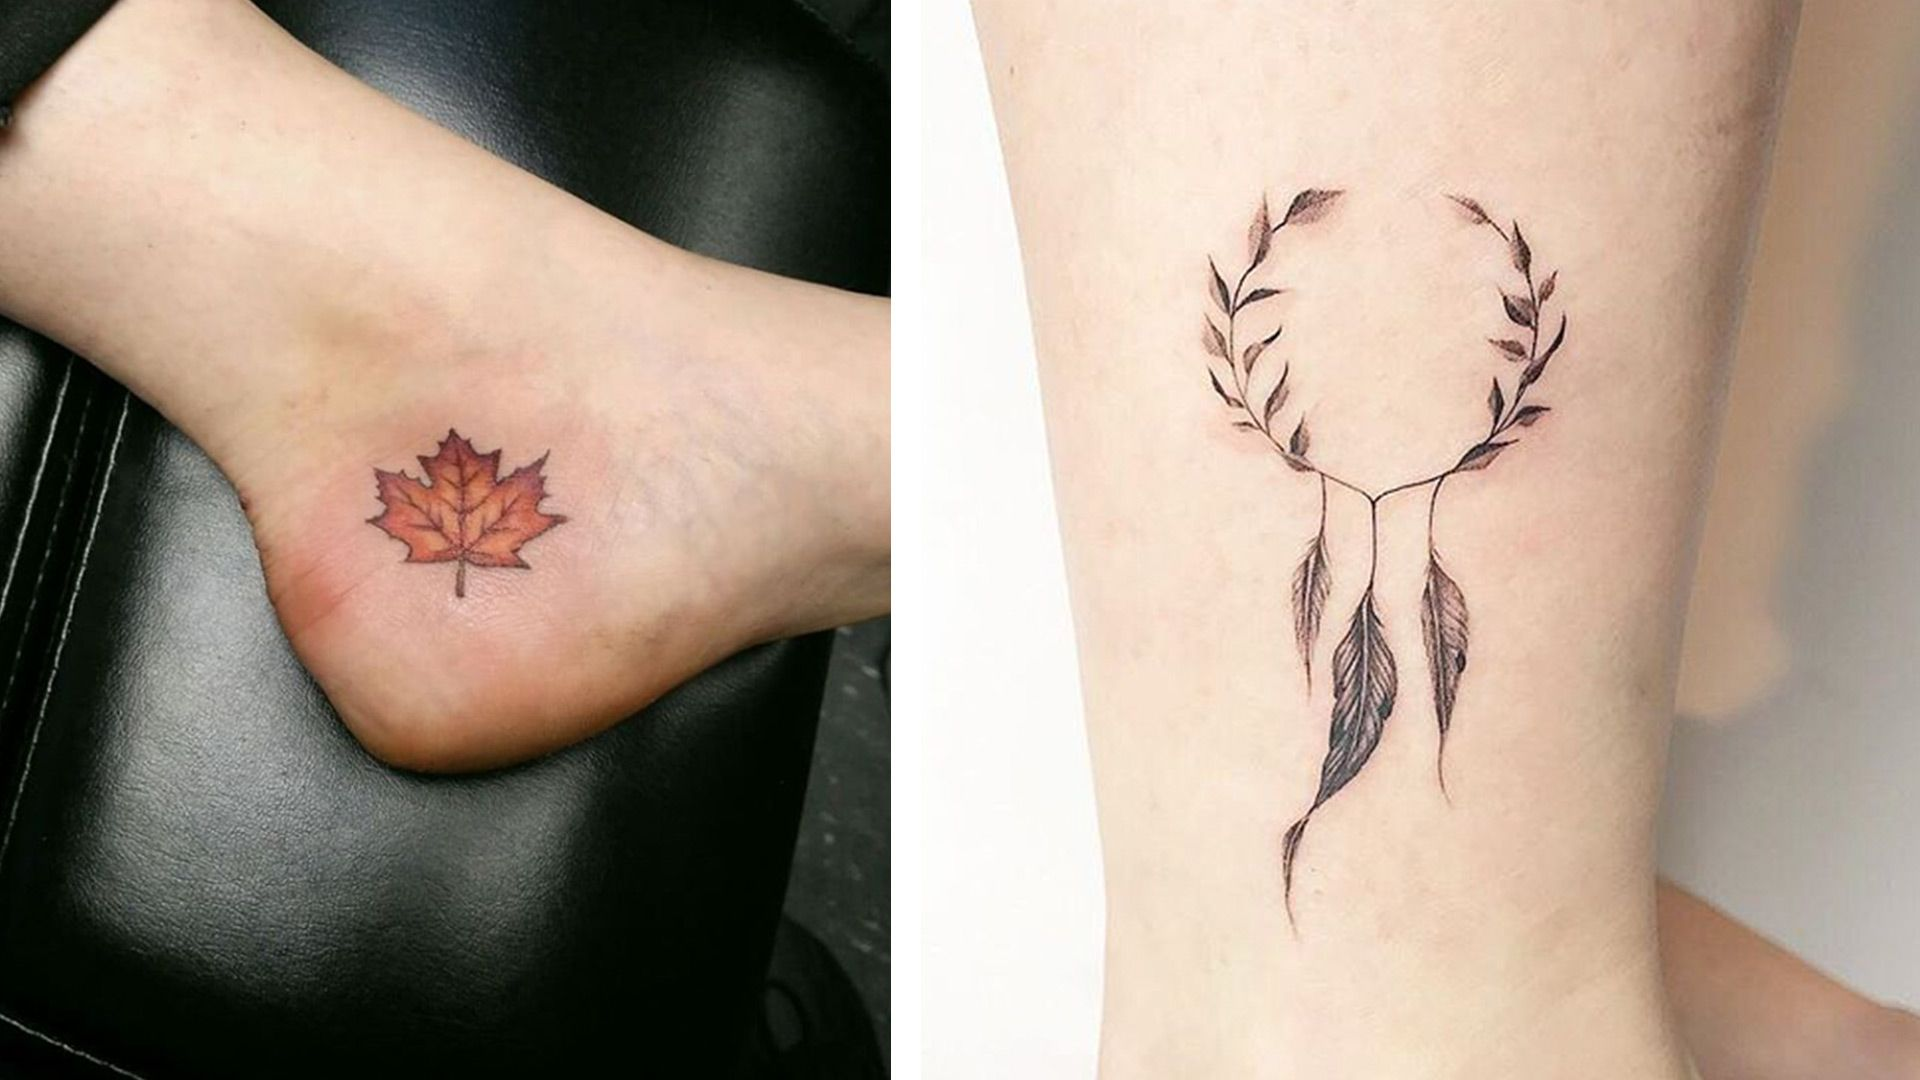 Best Tattoo Designs For Men And Women That Minimalists Will Love Best Tattoo Designs Tattoo Designs For Women Tattoo Designs